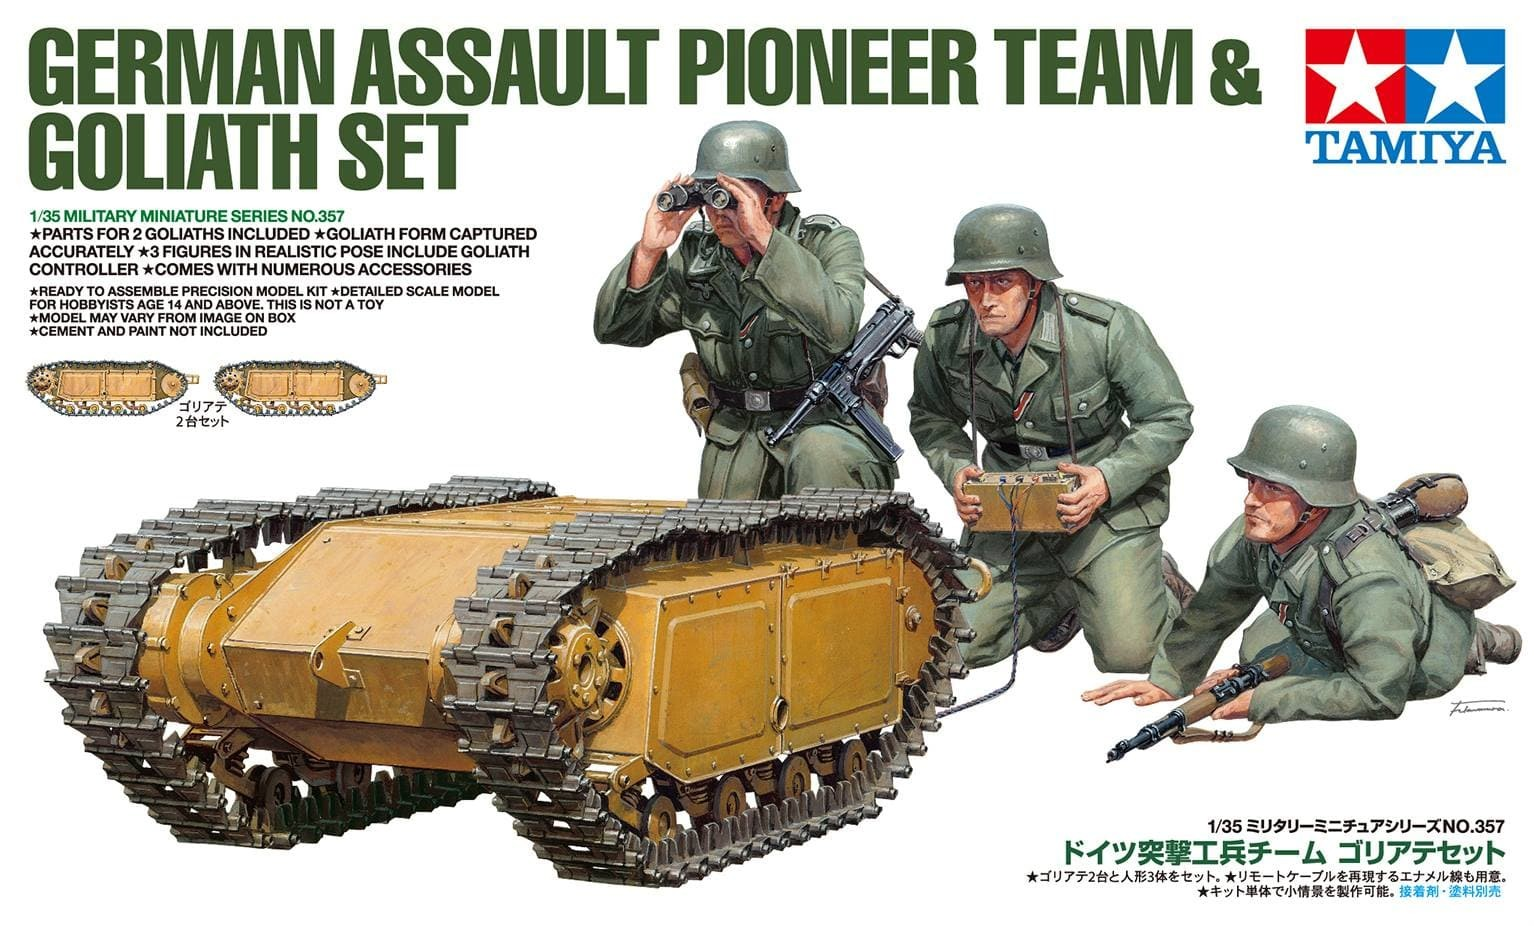 German Assault Pioneer Team & Goliath Set - Tamiya 35357 - plastic model kit - 1/35 scale